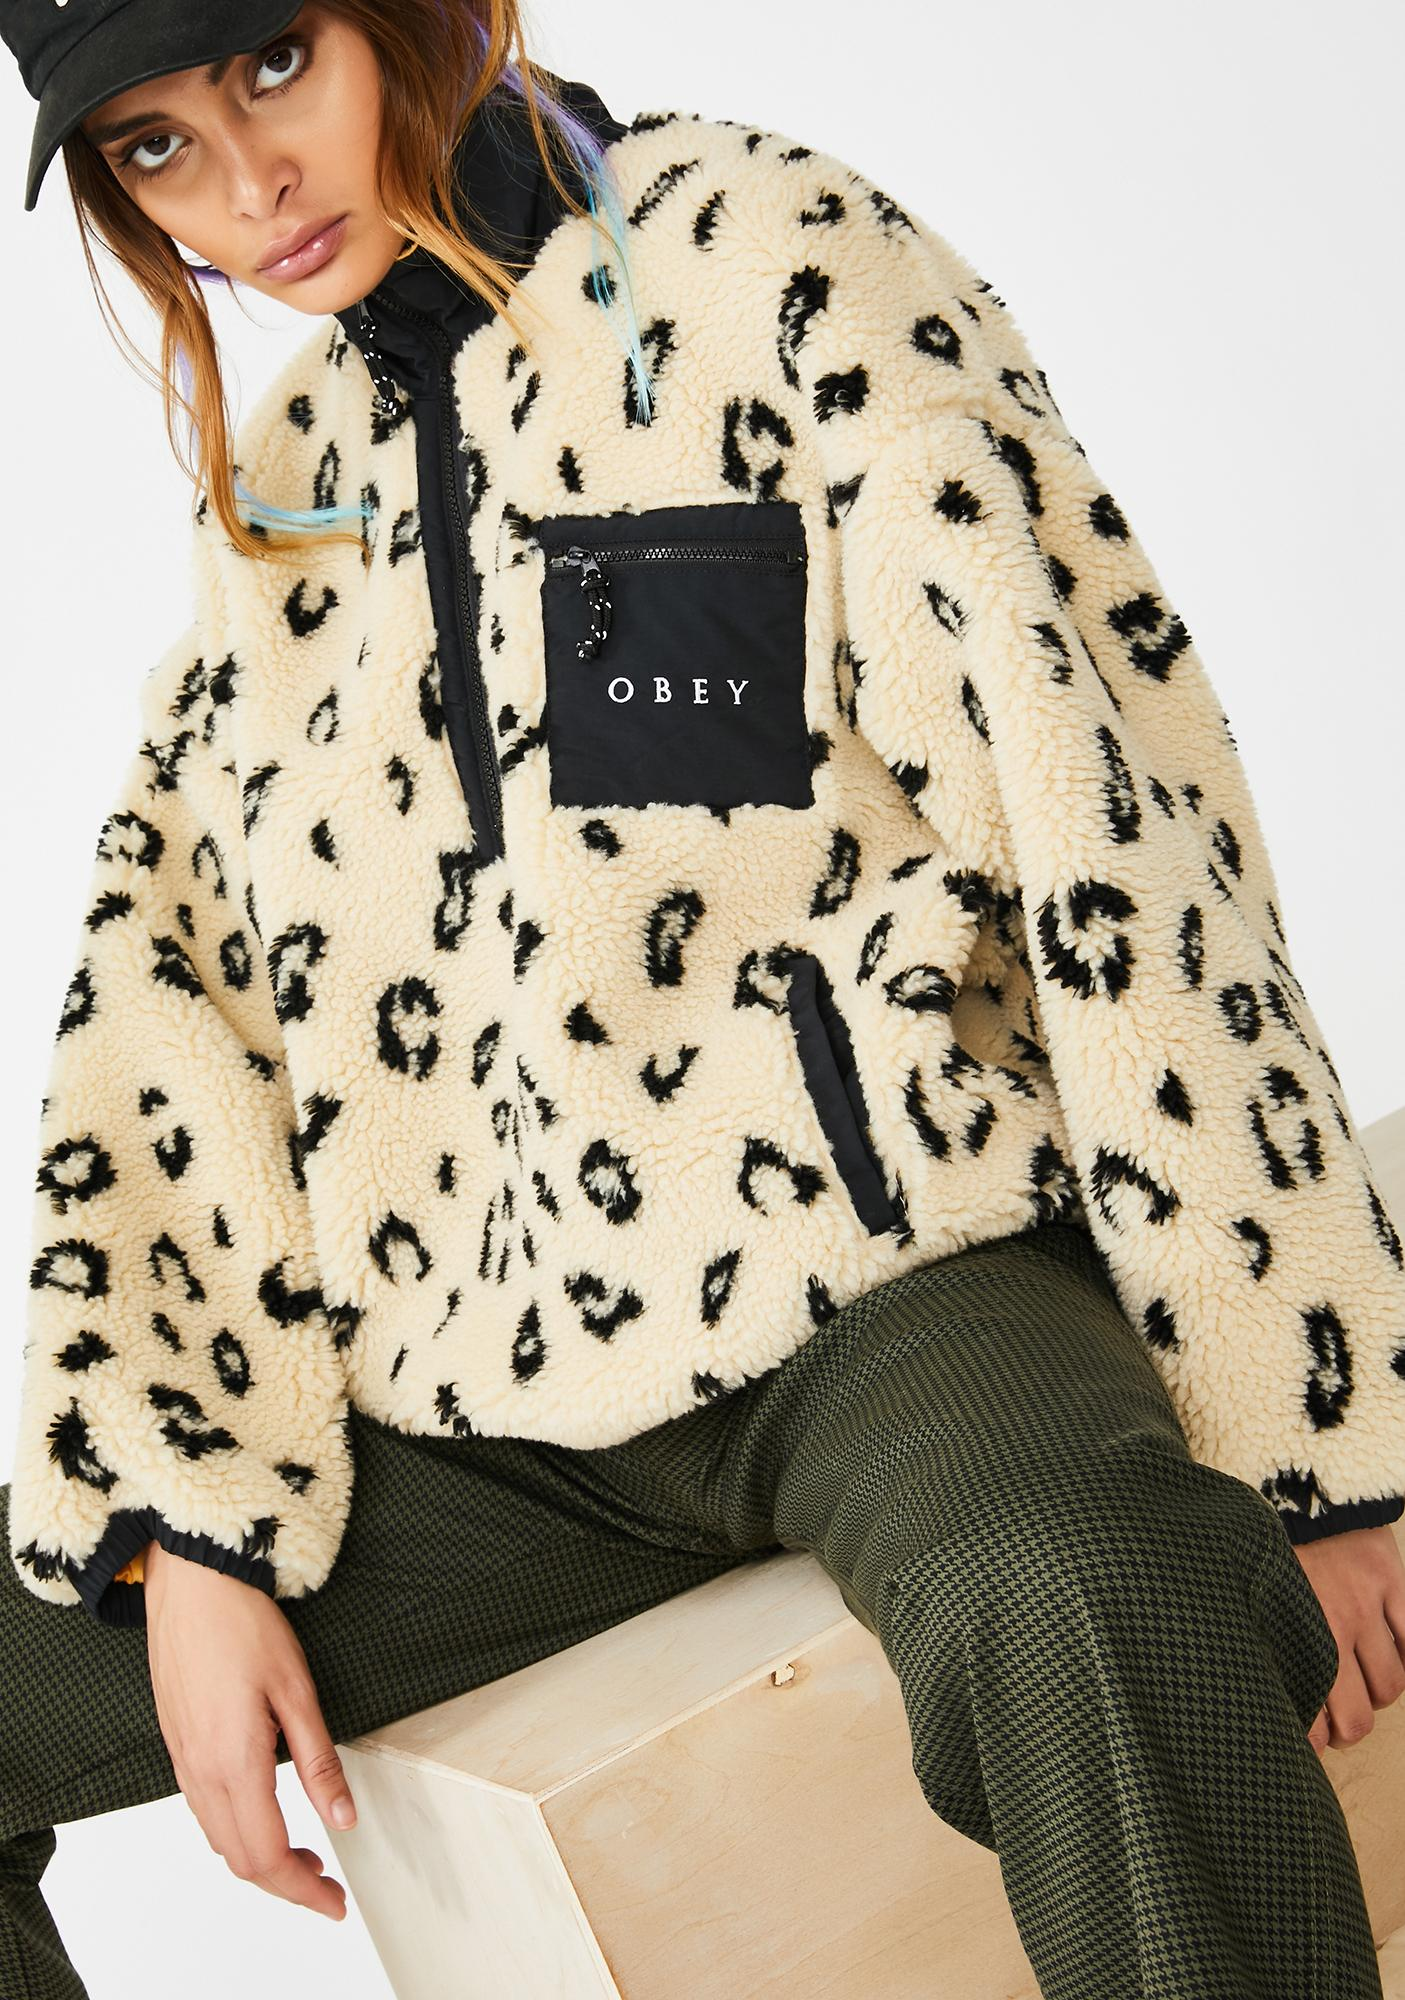 Obey Chiller Sherpa Anorak